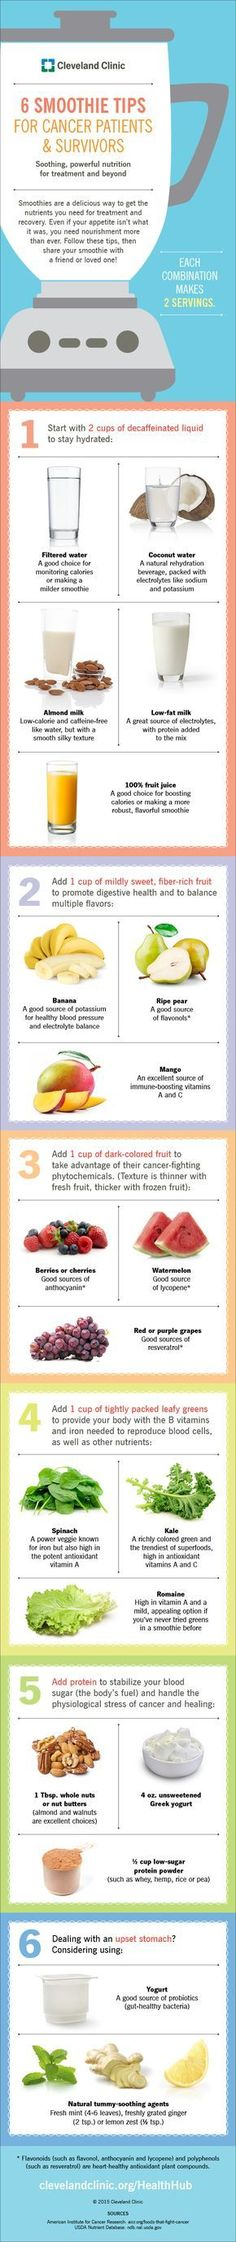 6 tips for #smoothies for #cancer patients and survivors. #recipes #infographic